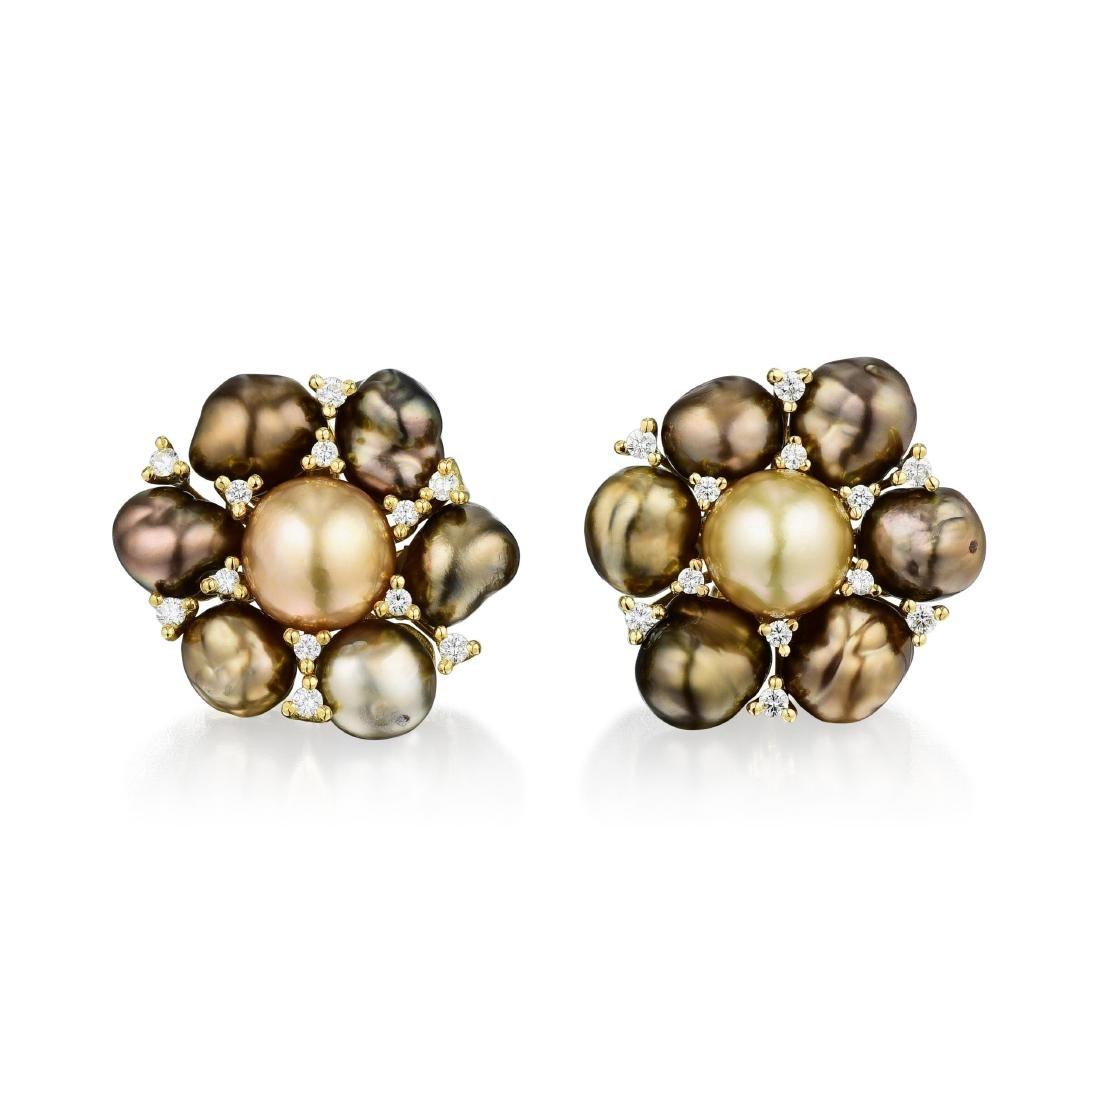 Yvel 18K Gold, Cultured Pearl and Diamond Earrings